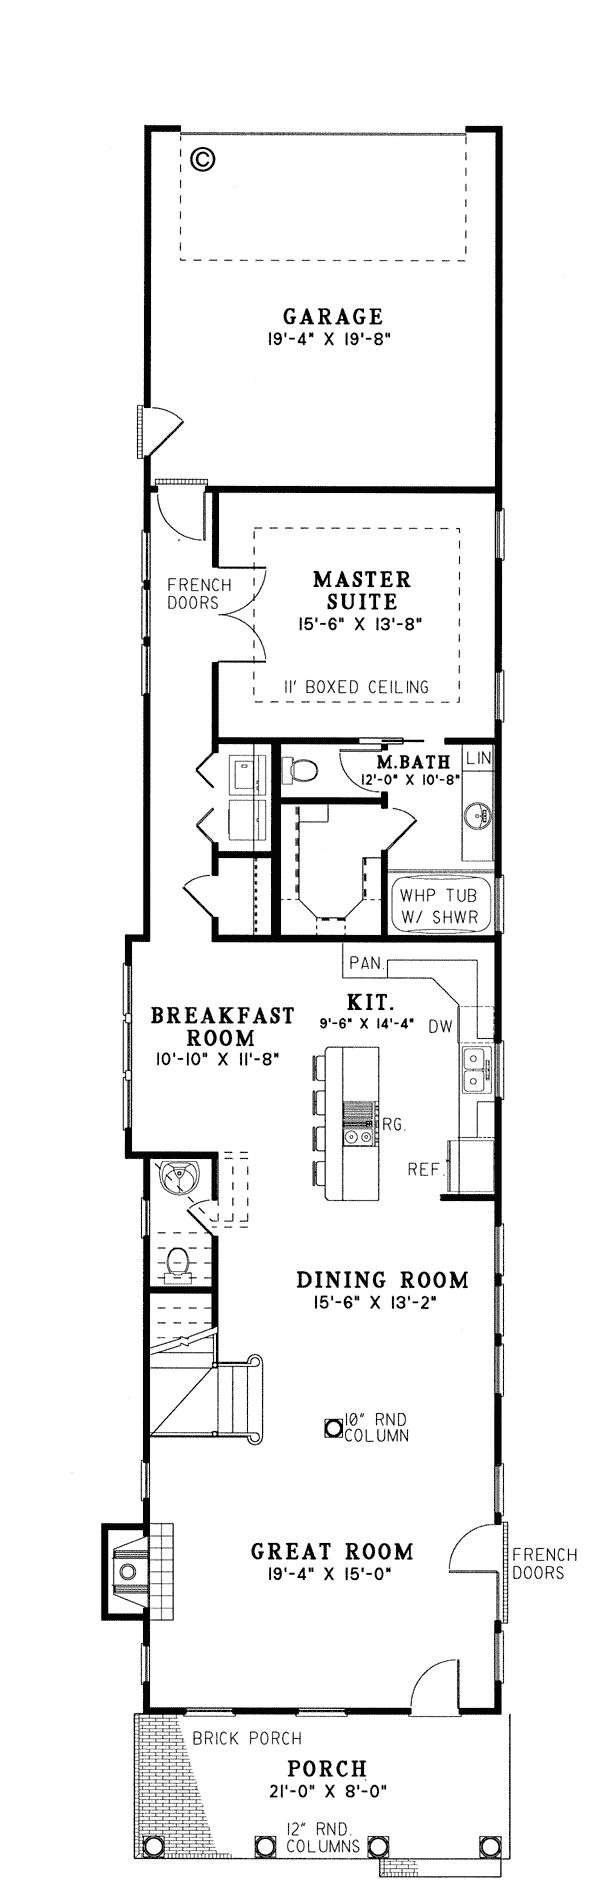 One Bedroom Home Plans Best 25 One Bedroom House Plans Ideas On Pinterest  One Bedroom